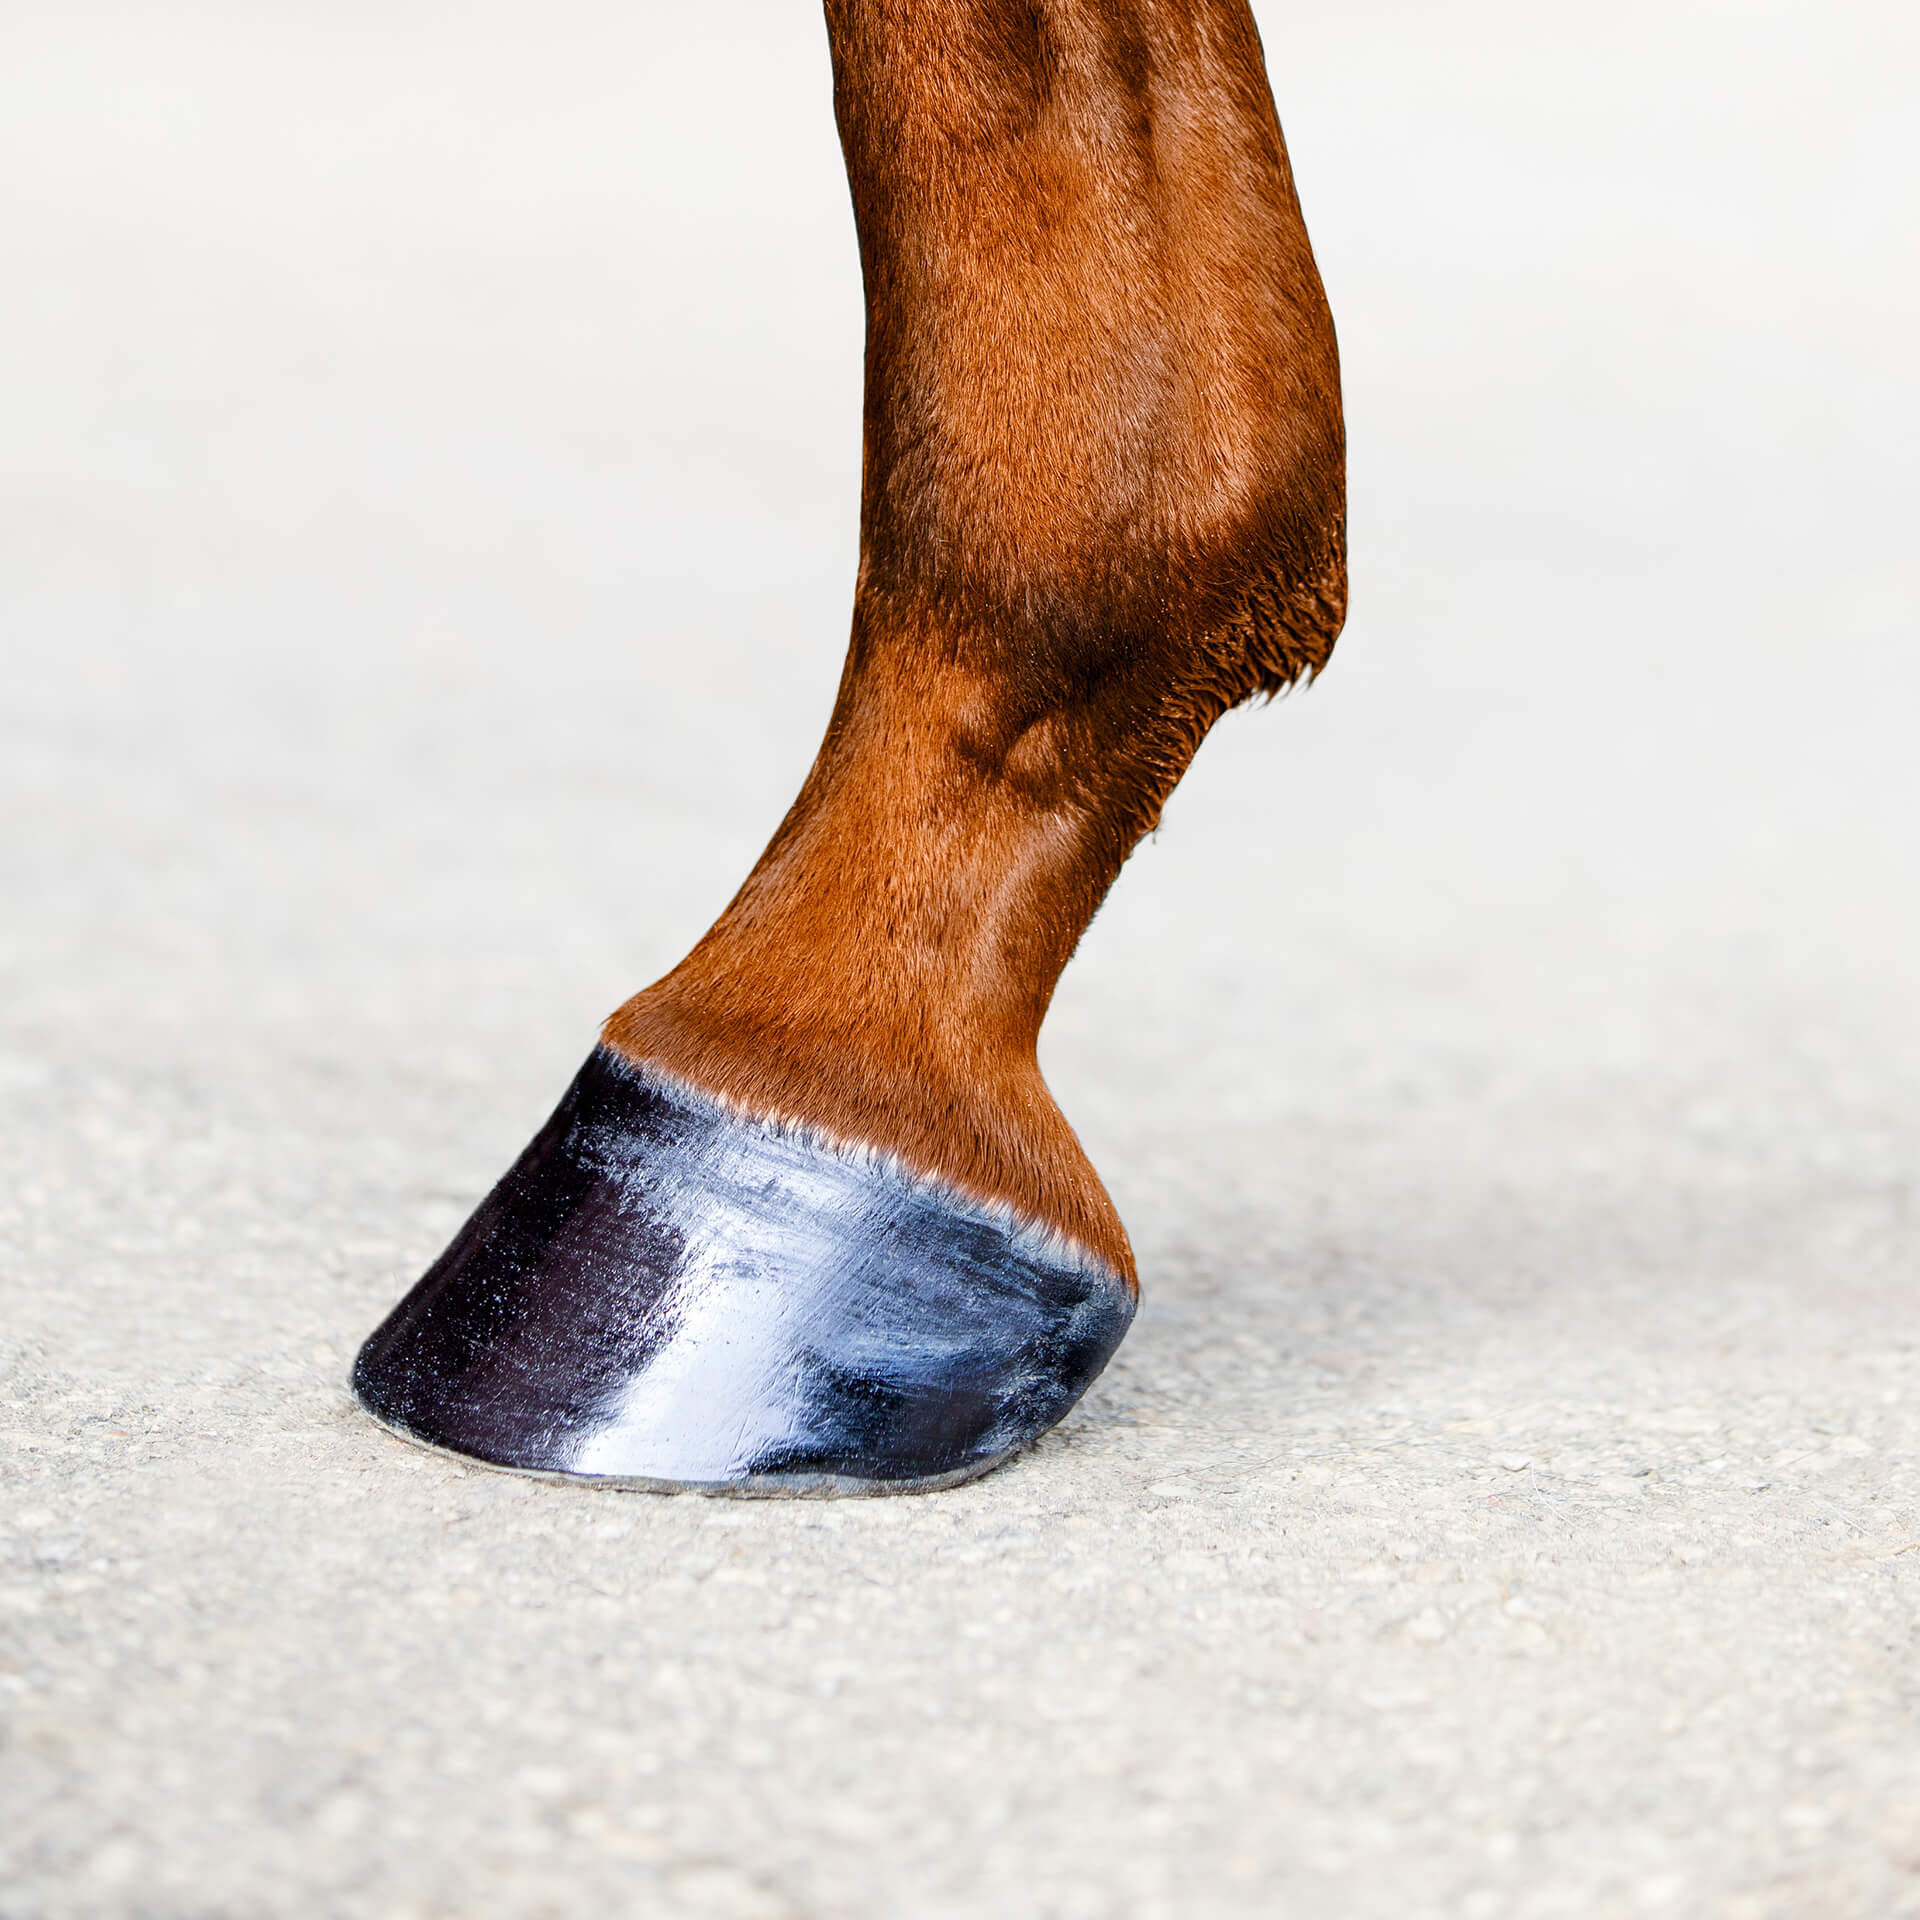 Hoof Anatomy: What Horse Hooves are Made of